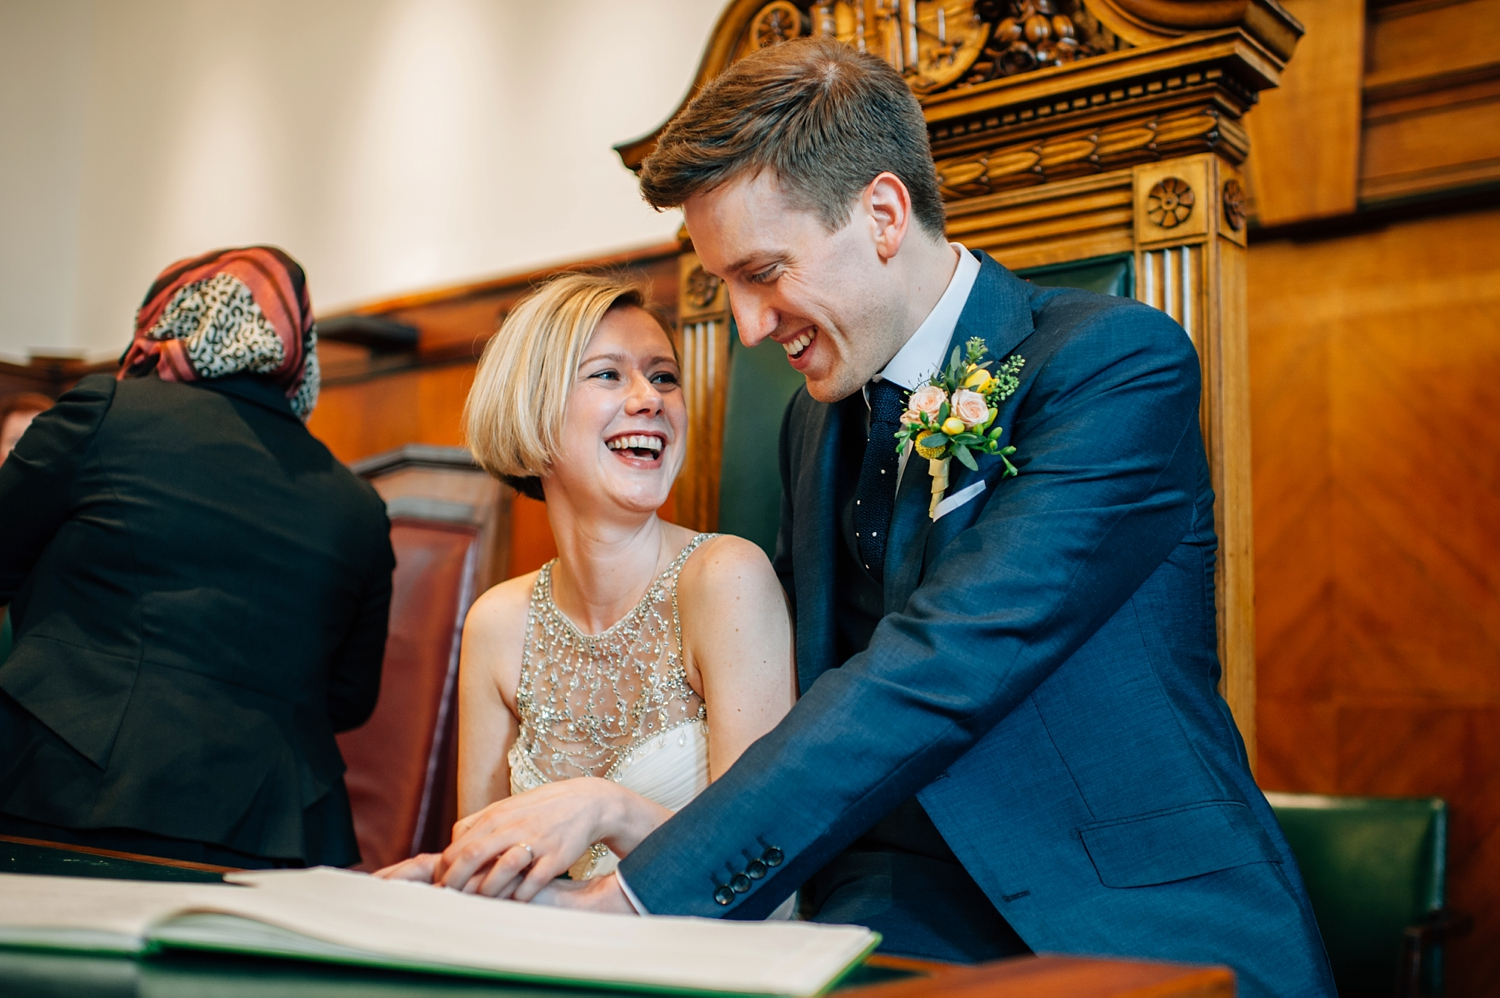 0056-lisa-devine-alternative-wedding-photography-london-hackney-dalston-london-photography-townhall-hotel.JPG